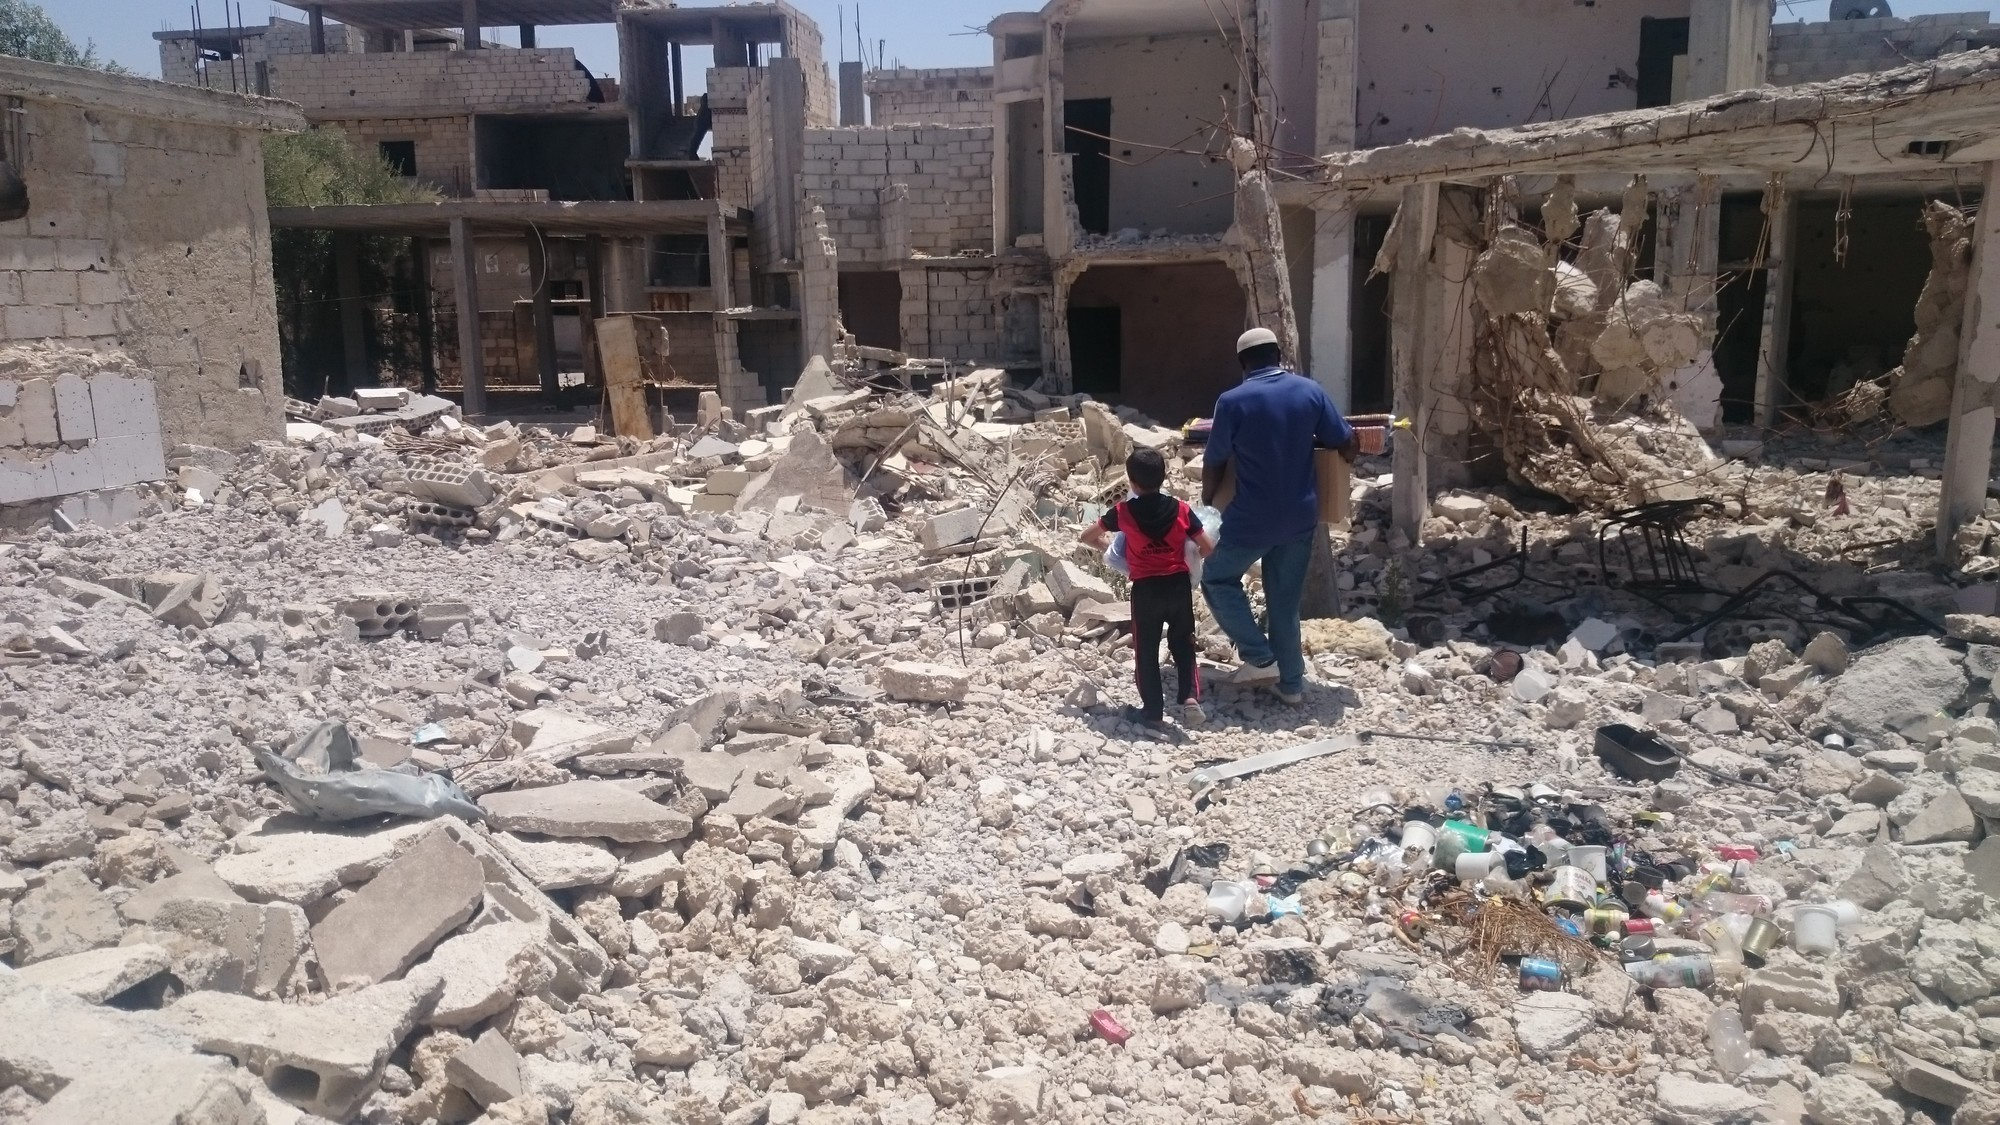 A man and a child walk through the rubble of a destroyed building.